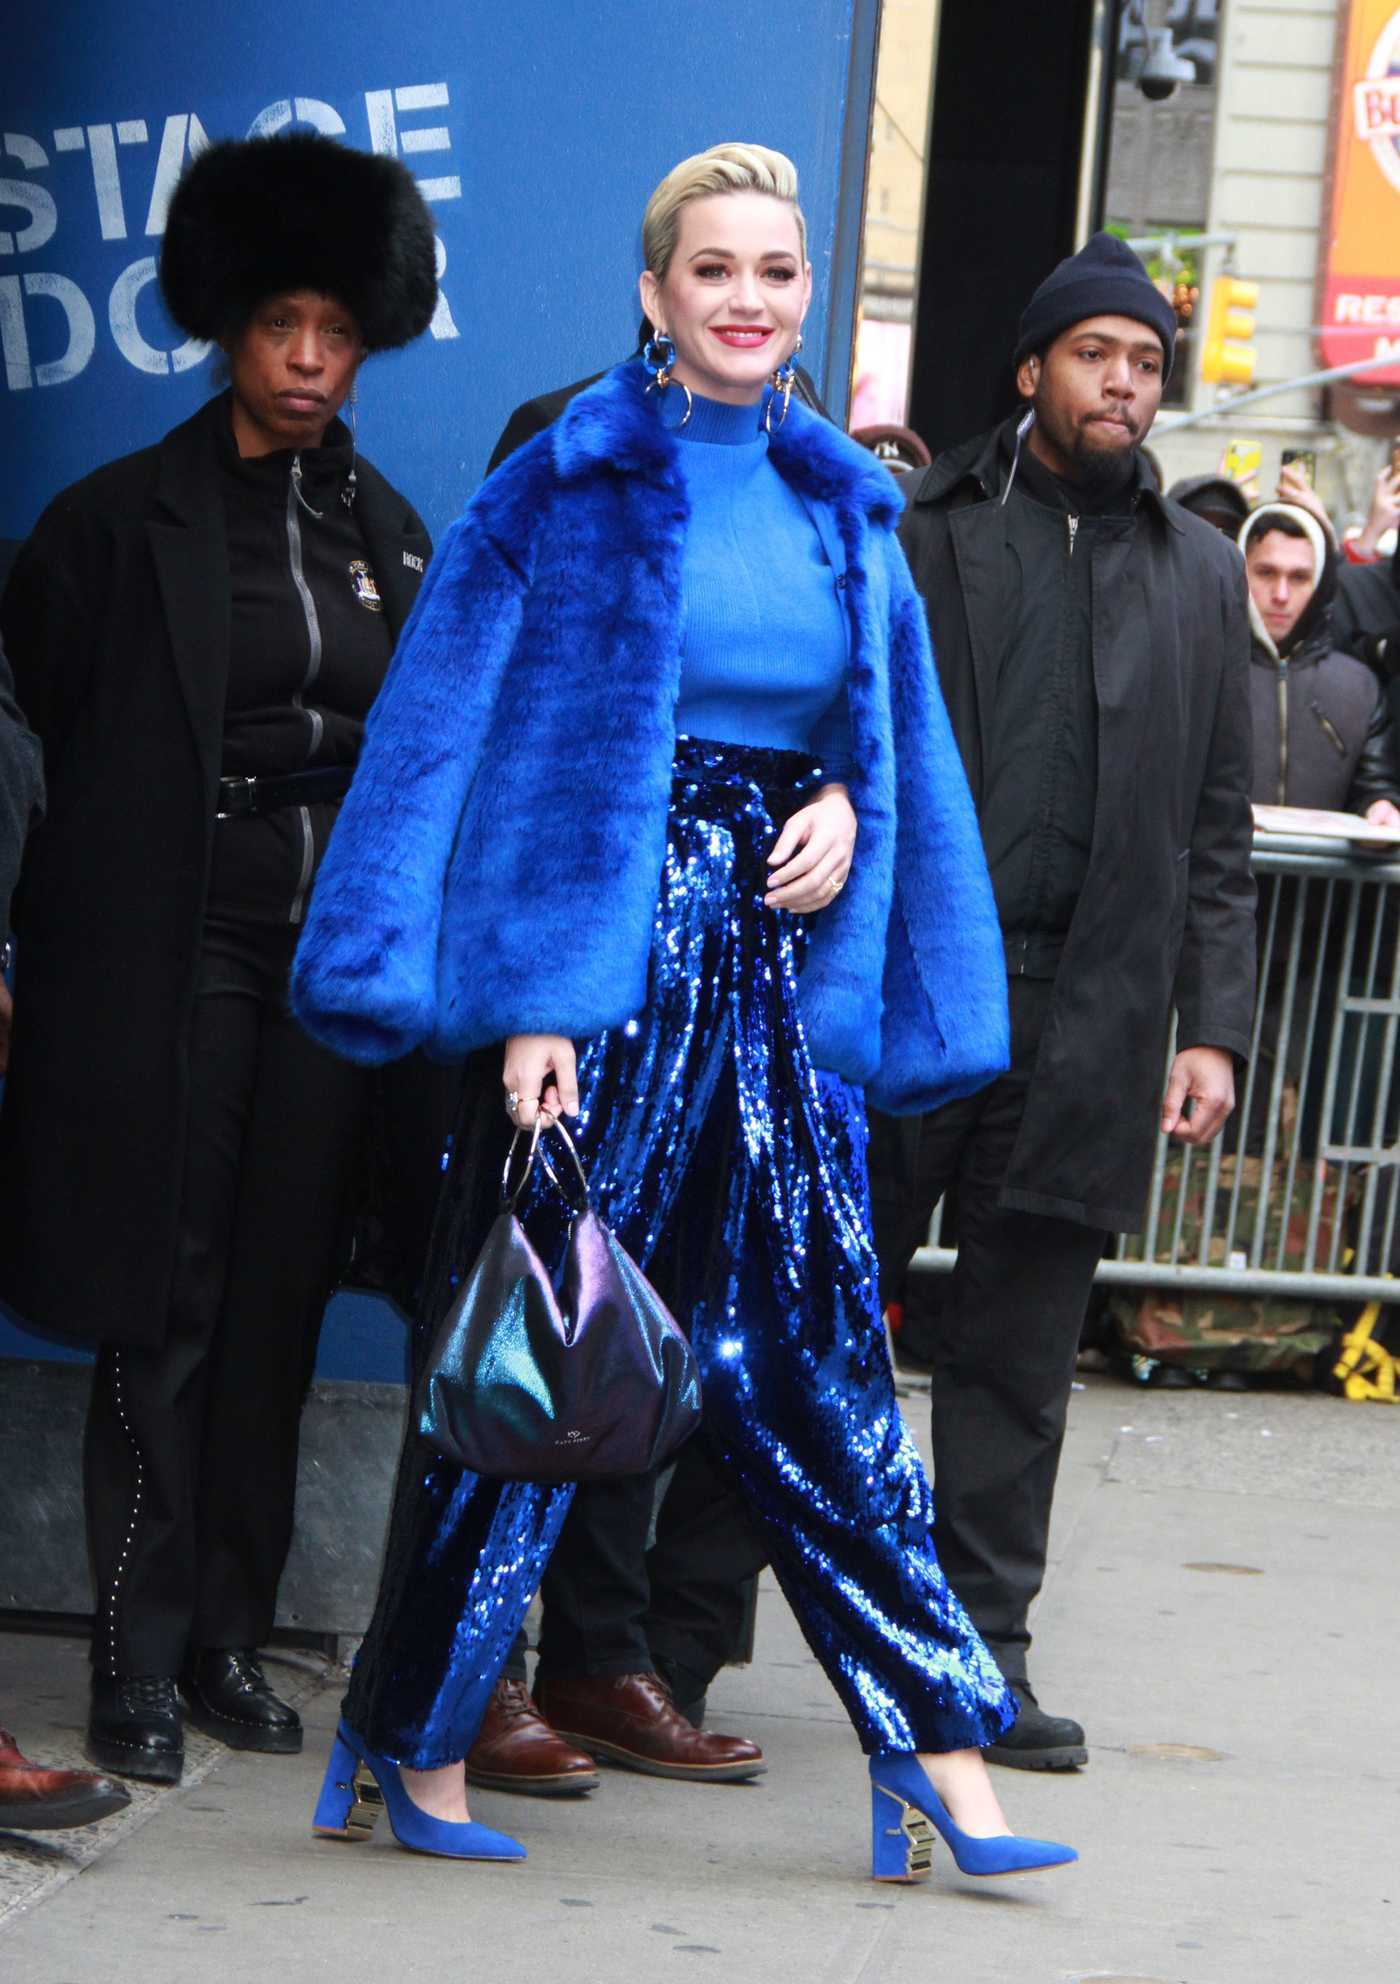 Katy Perry in a Blue Fur Coat Arrives at Good Morning Amertica in NYC 02/27/2019